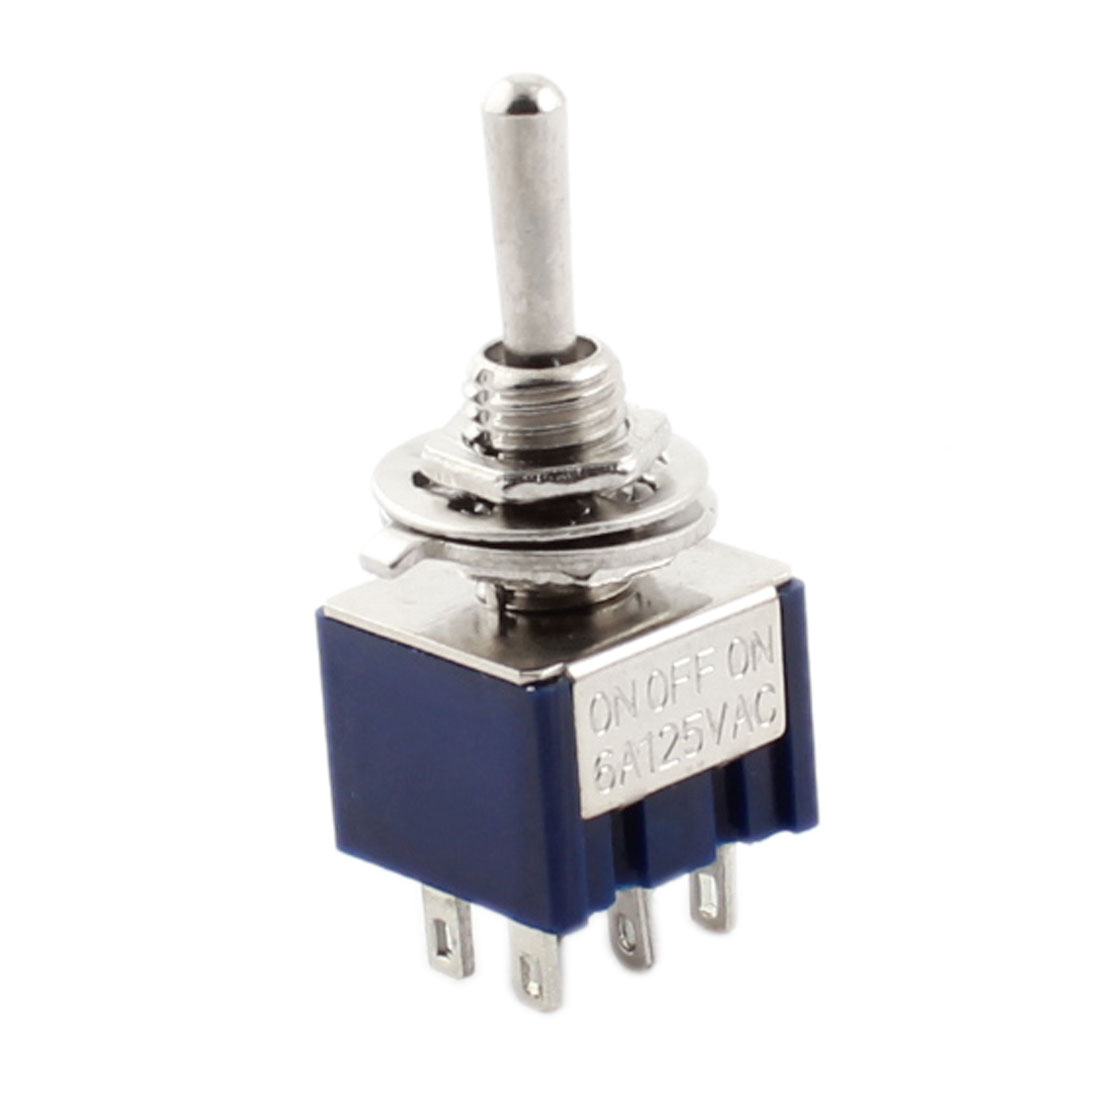 Blue AC 125V 6A DPDT On/Off/On 3Positions 6 Pin Latching Toggle Switch